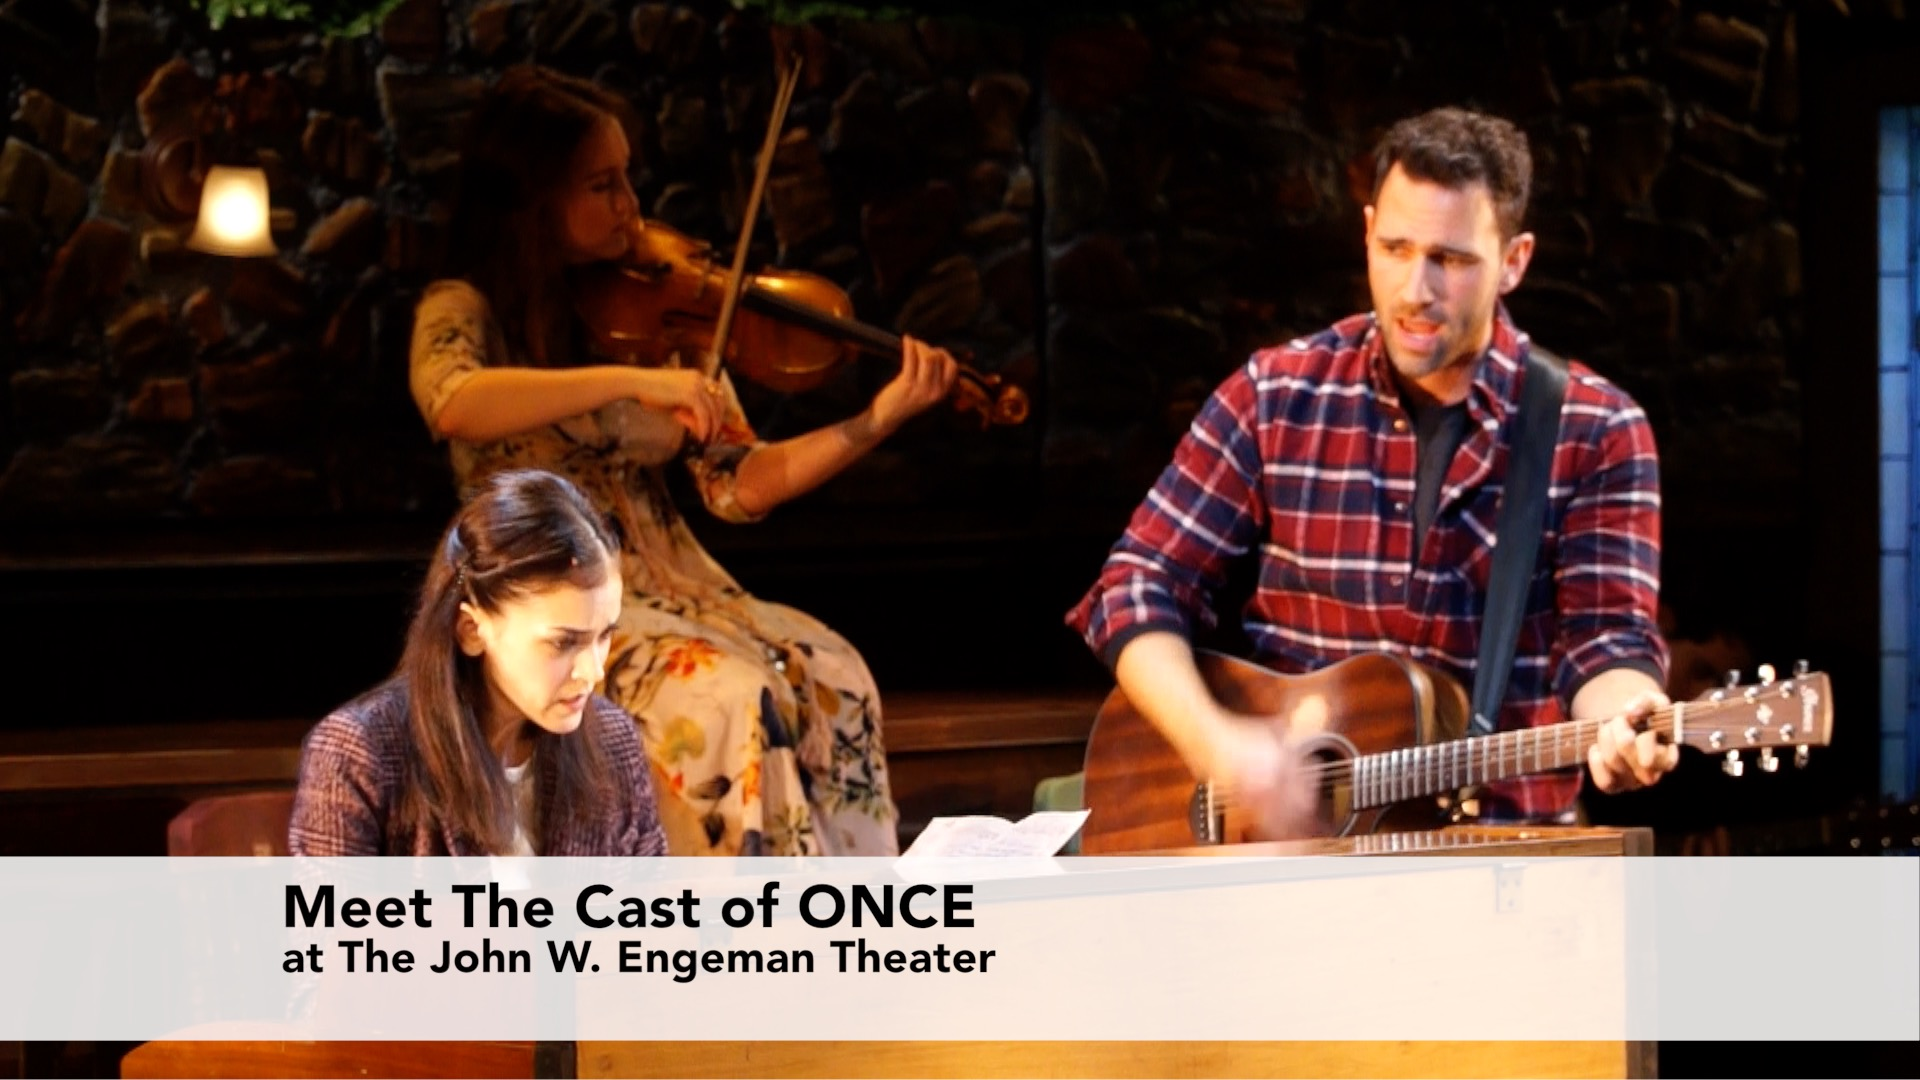 Meet The Cast of Once at The John W Engeman Theater